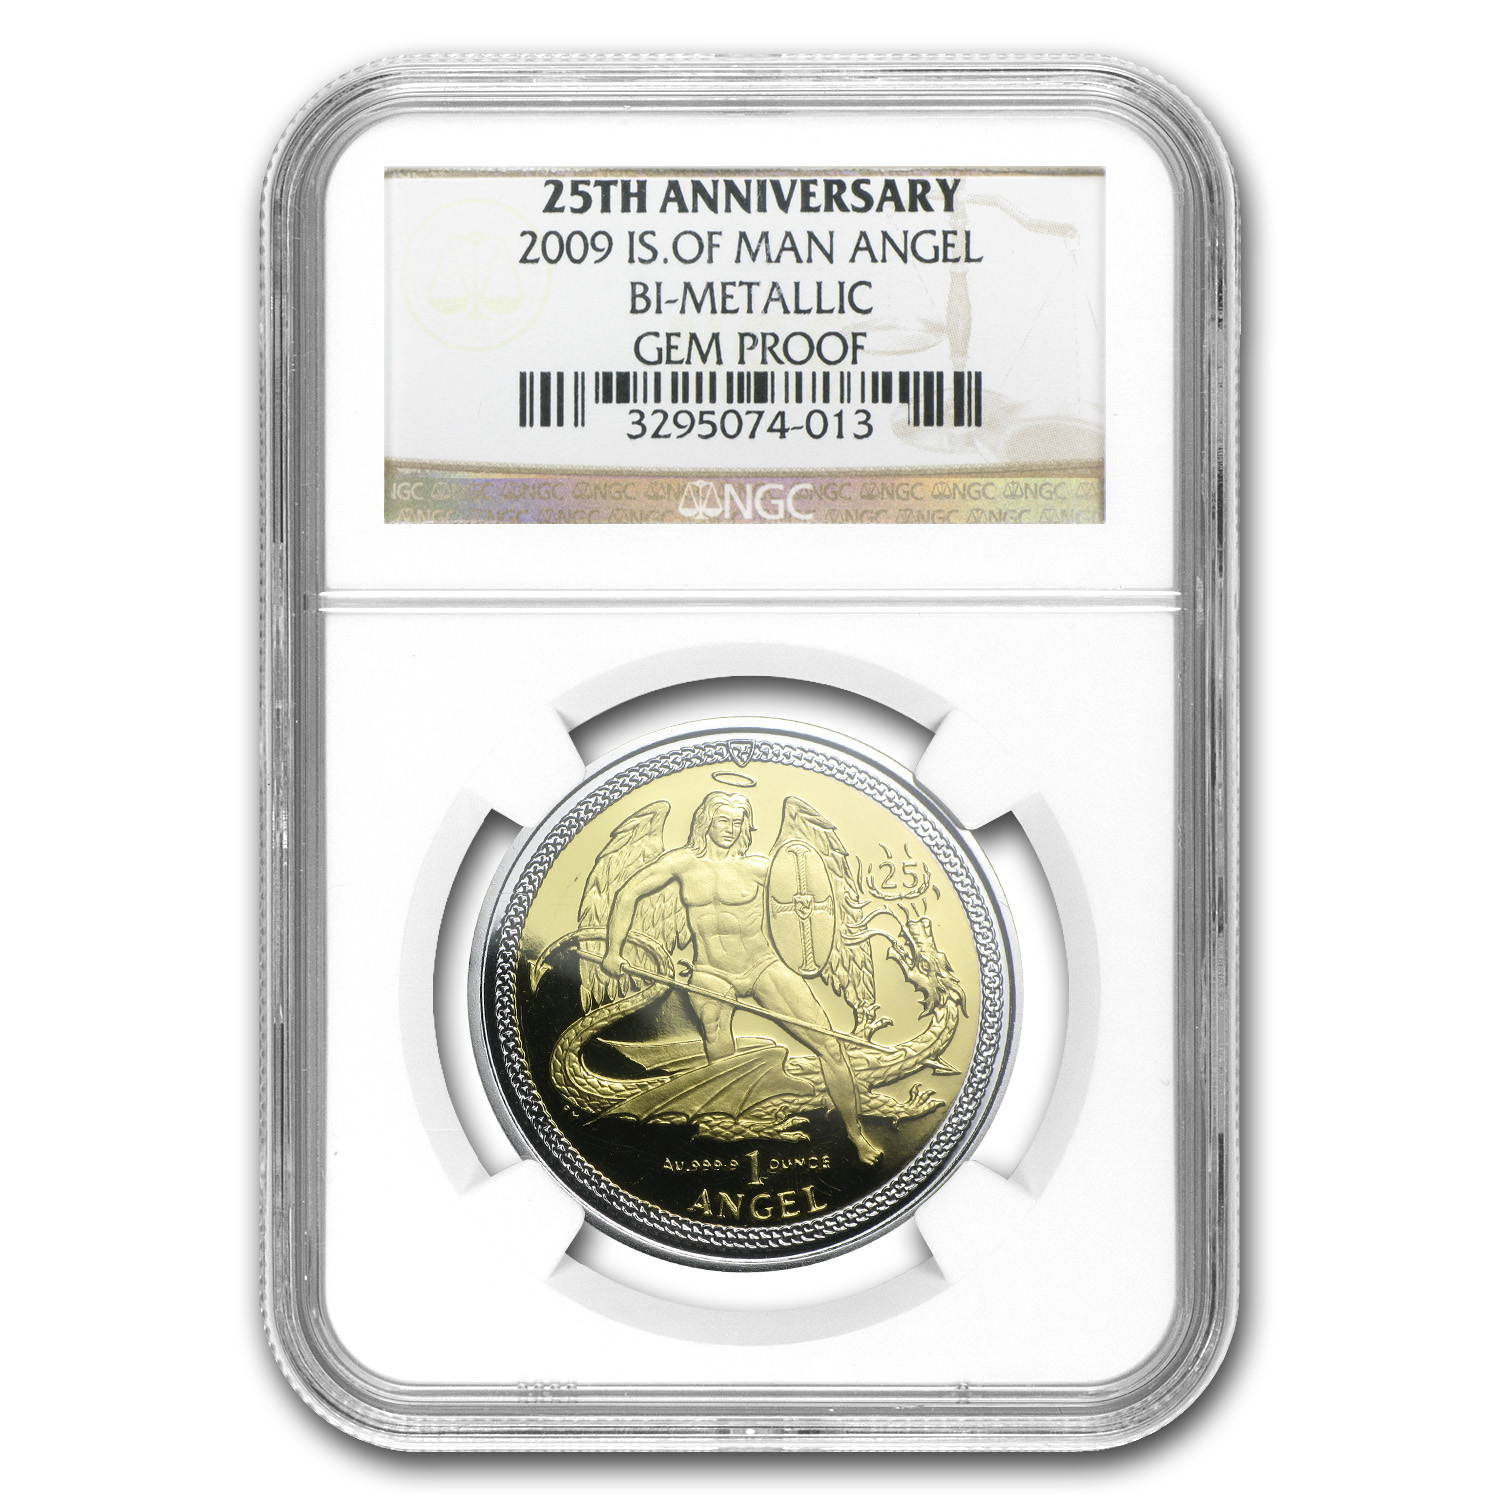 2009 Isle of Man Bi-Metallic Angel 25th Anniv Gem Proof NGC